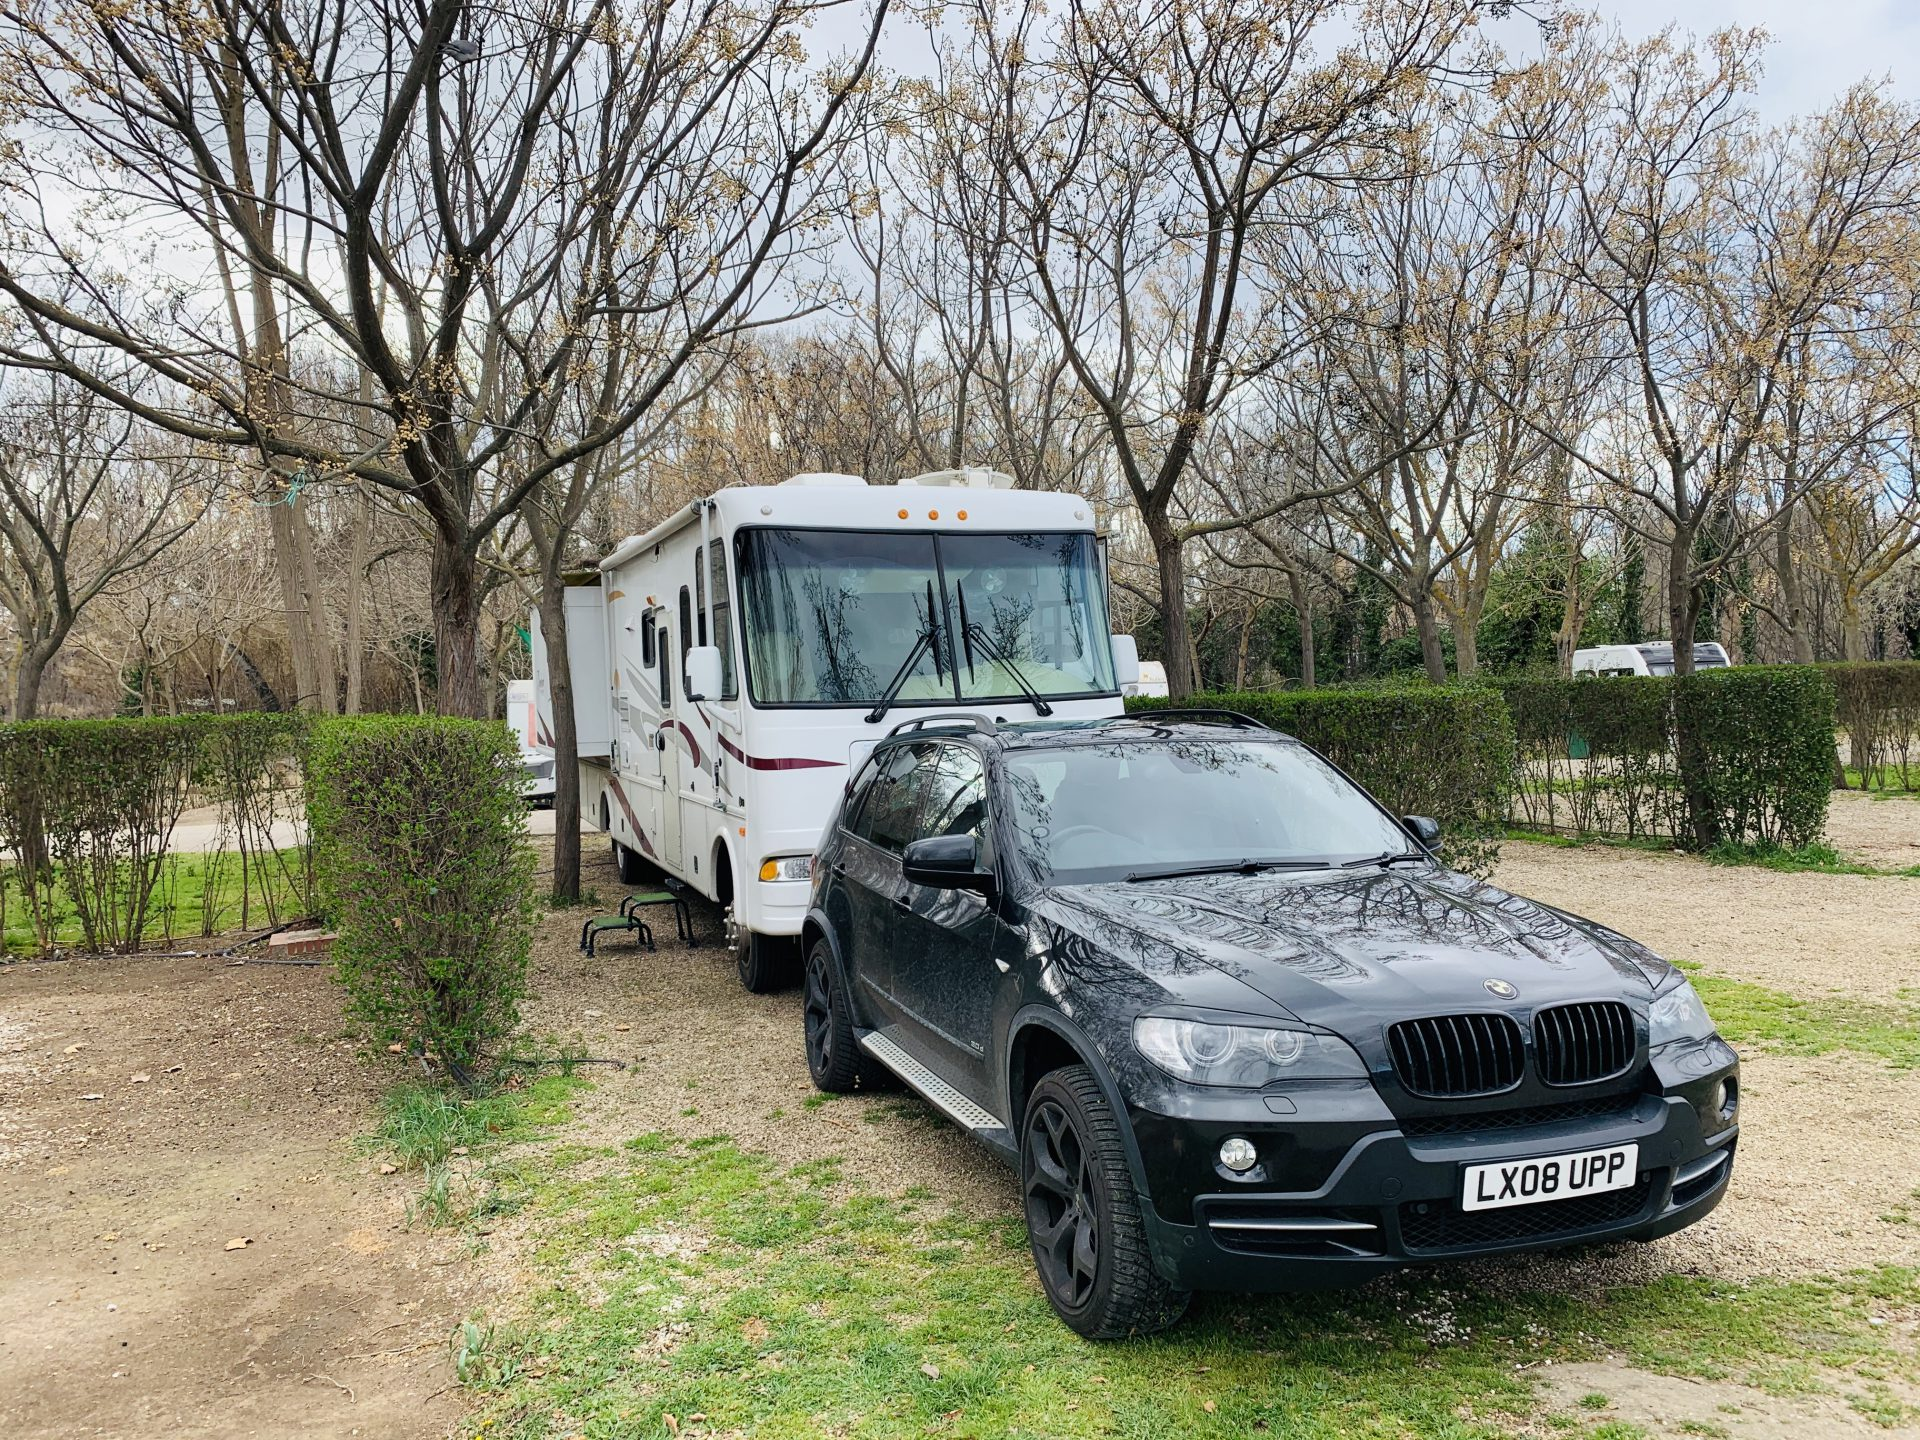 RV and BMW parked under trees